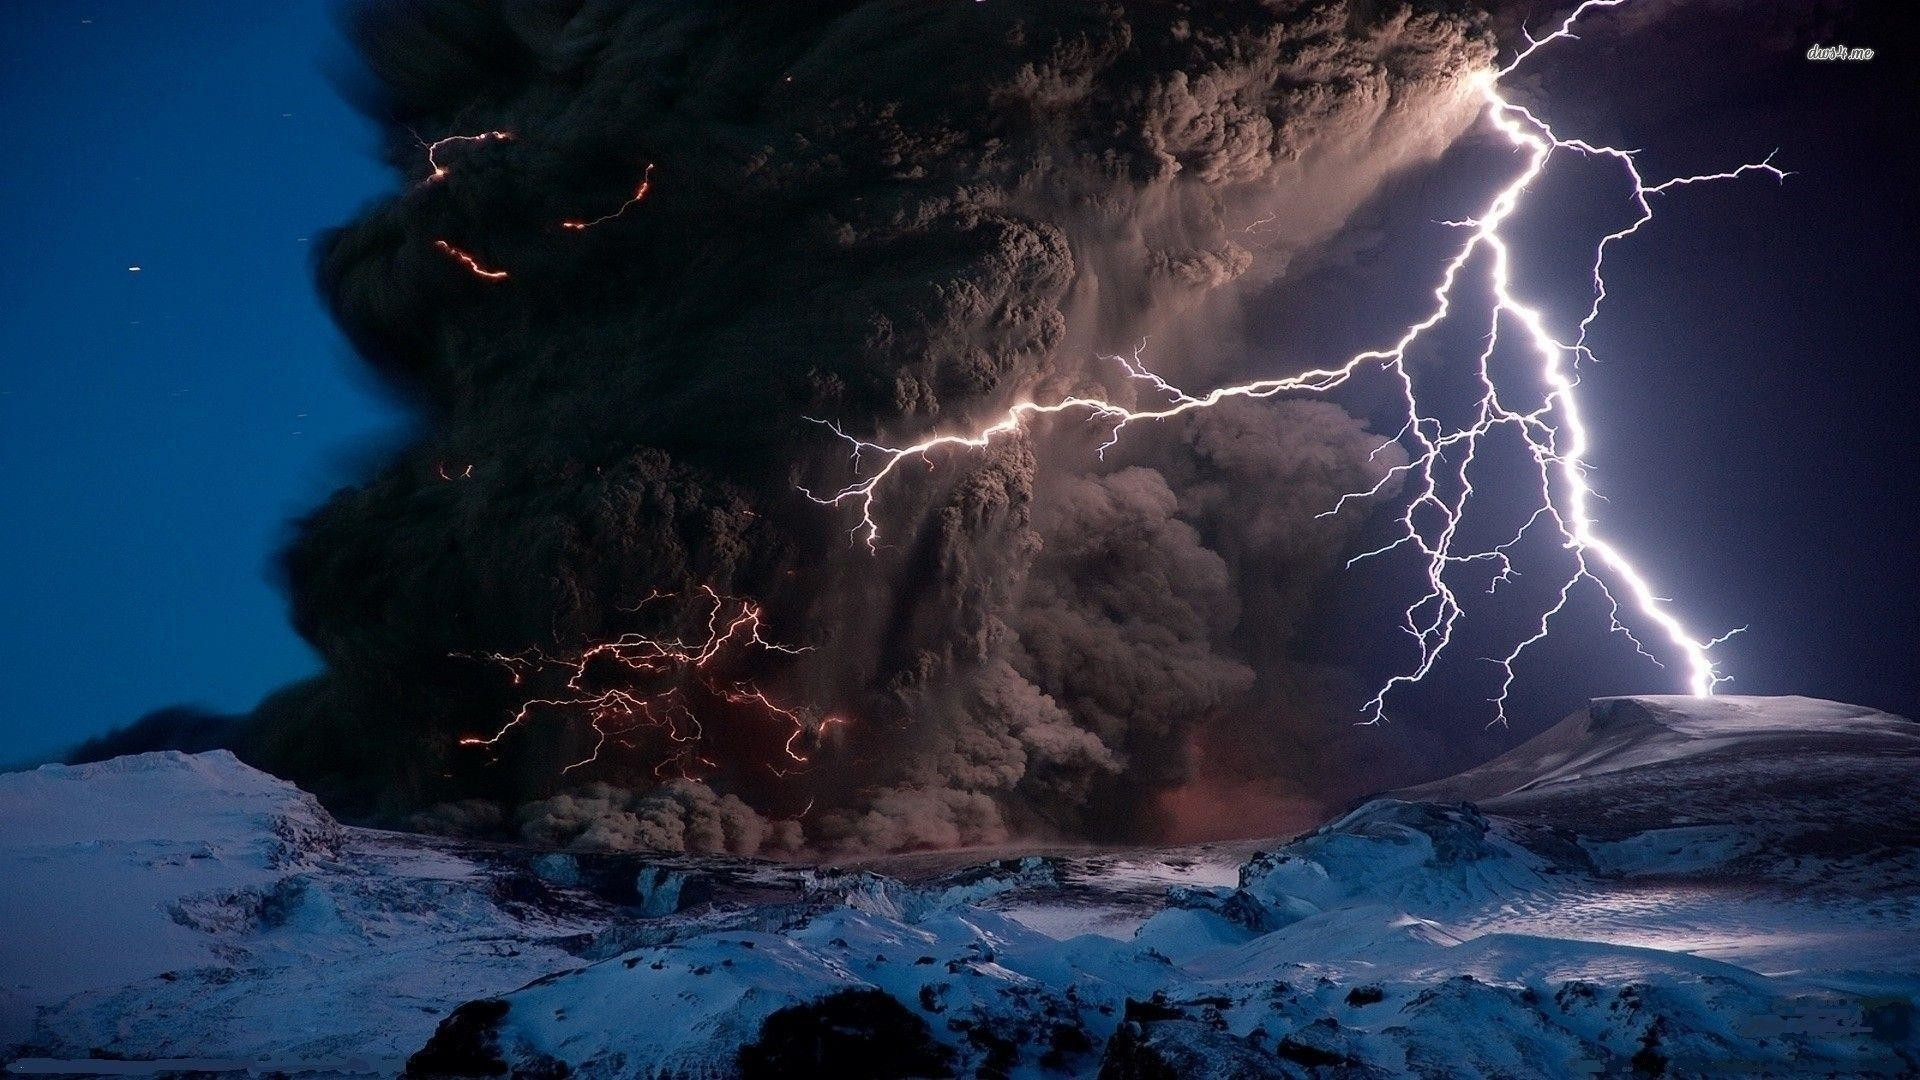 Res: 1920x1080, Nature Wallpapers. Download the following Volcanic Lightning ...